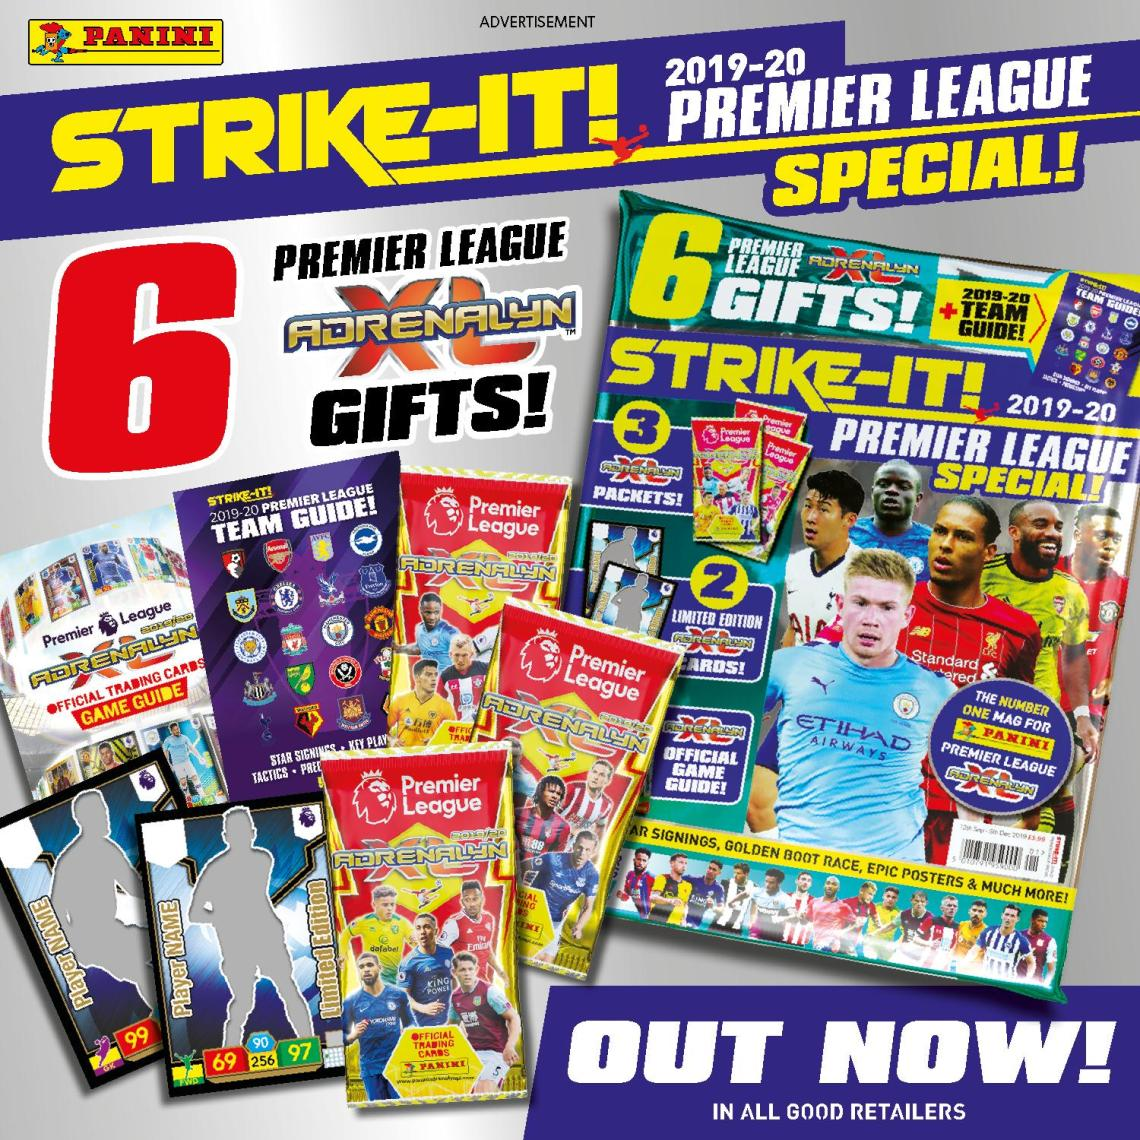 PANINI ADRENALYN XL PREMIER LEAGUE 2019-20 ANNONCE TWITTER STRIKE-IT SEPTEMBRE 2019.JPG